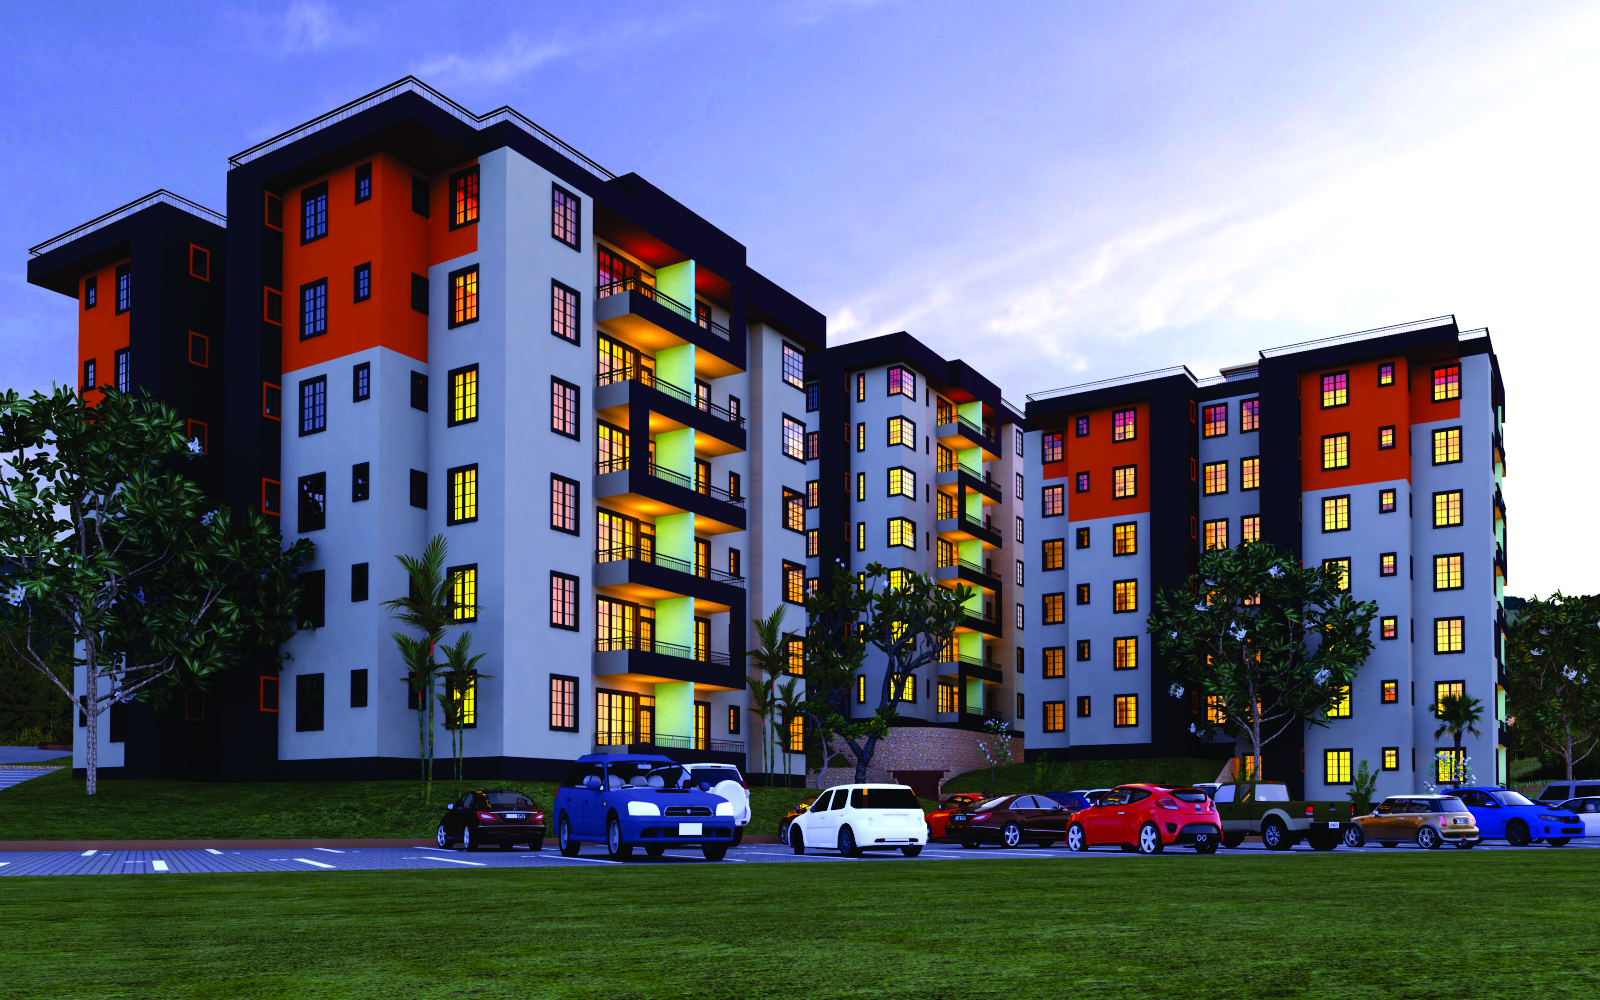 richland-pointe-development-kamiti-road-3-bedroom-apartments-introductory-offer-prices-from-kshs-8-25-8-55m_Test-Banner